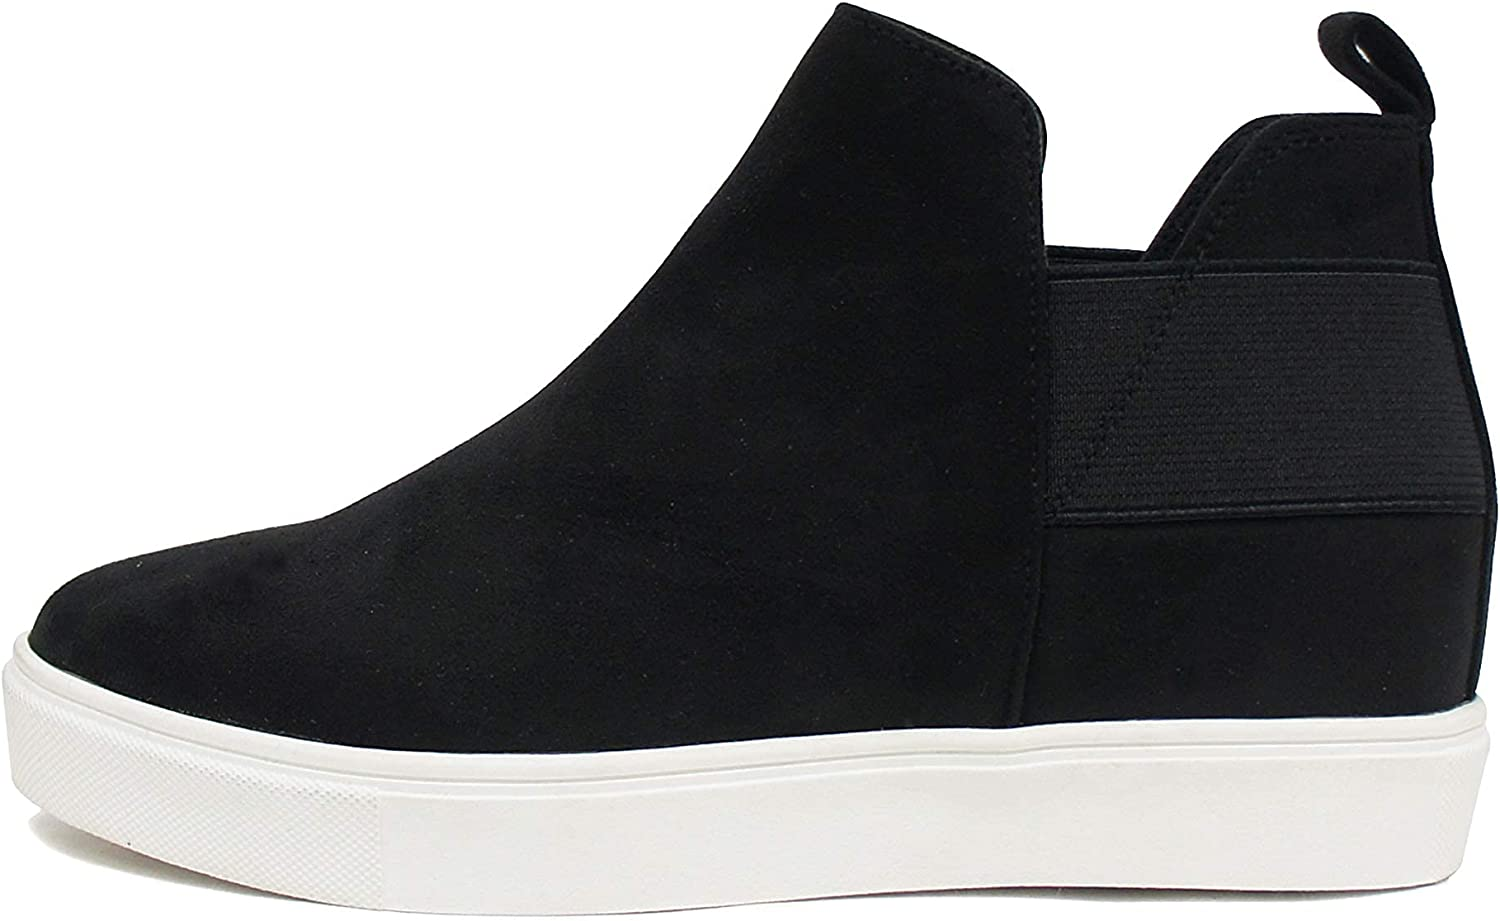 Soda Topshoe Diana - High Top Sneaker with Hidden Wedge and Elastic Gore Insets